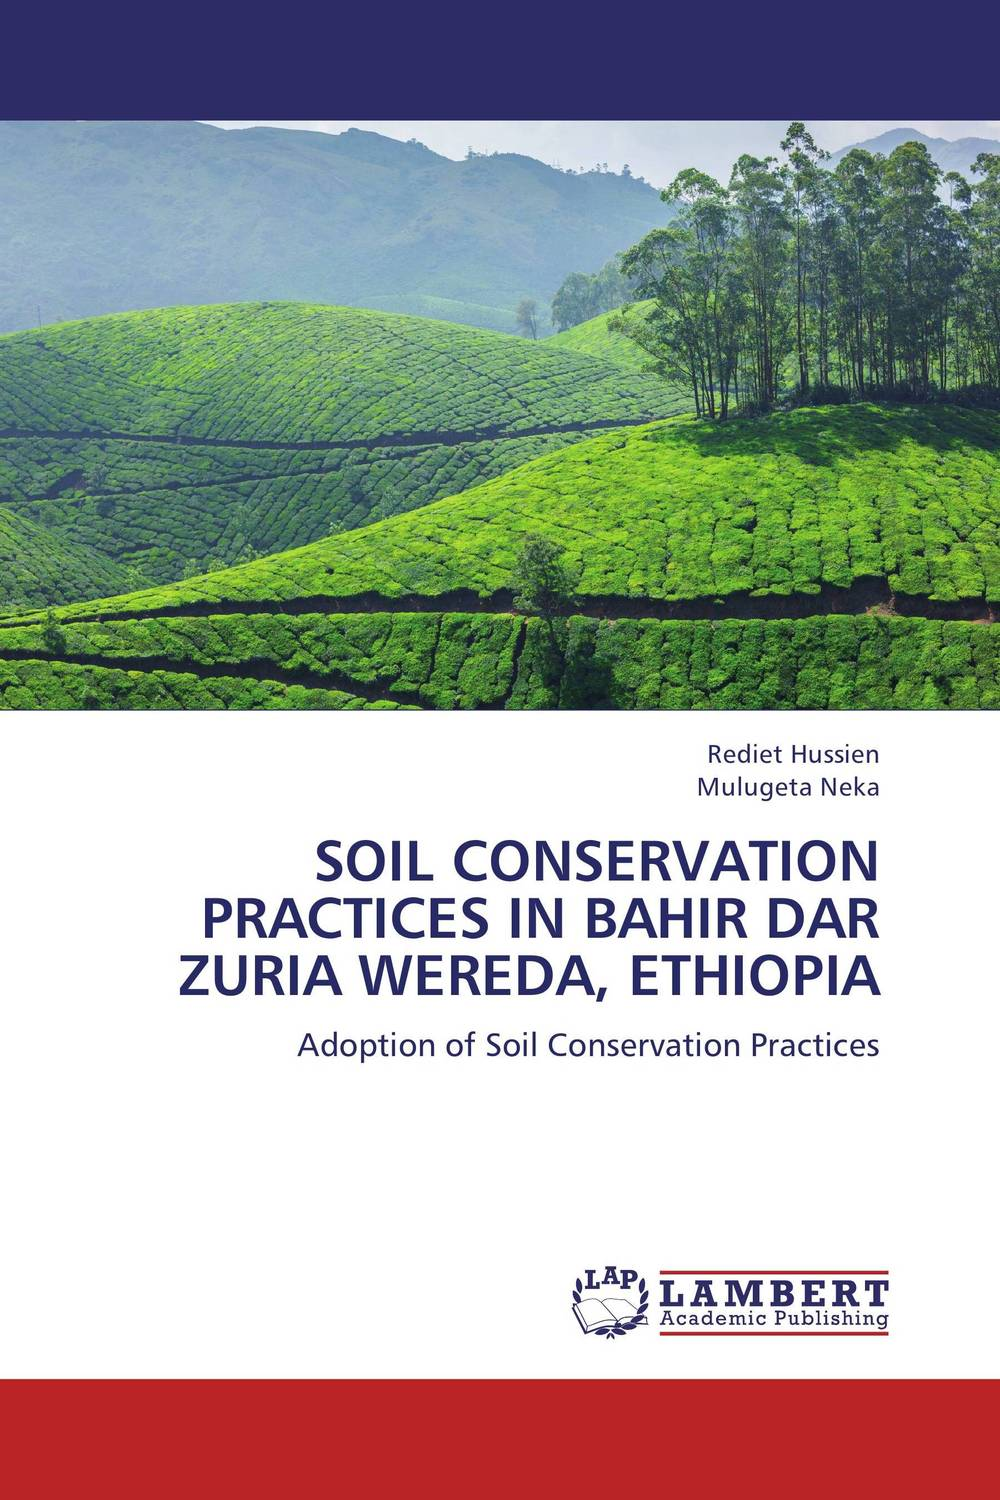 Soil conservation practices in Bahir Dar Zuria Wereda, Ethiopia the role of heritage conservation districts